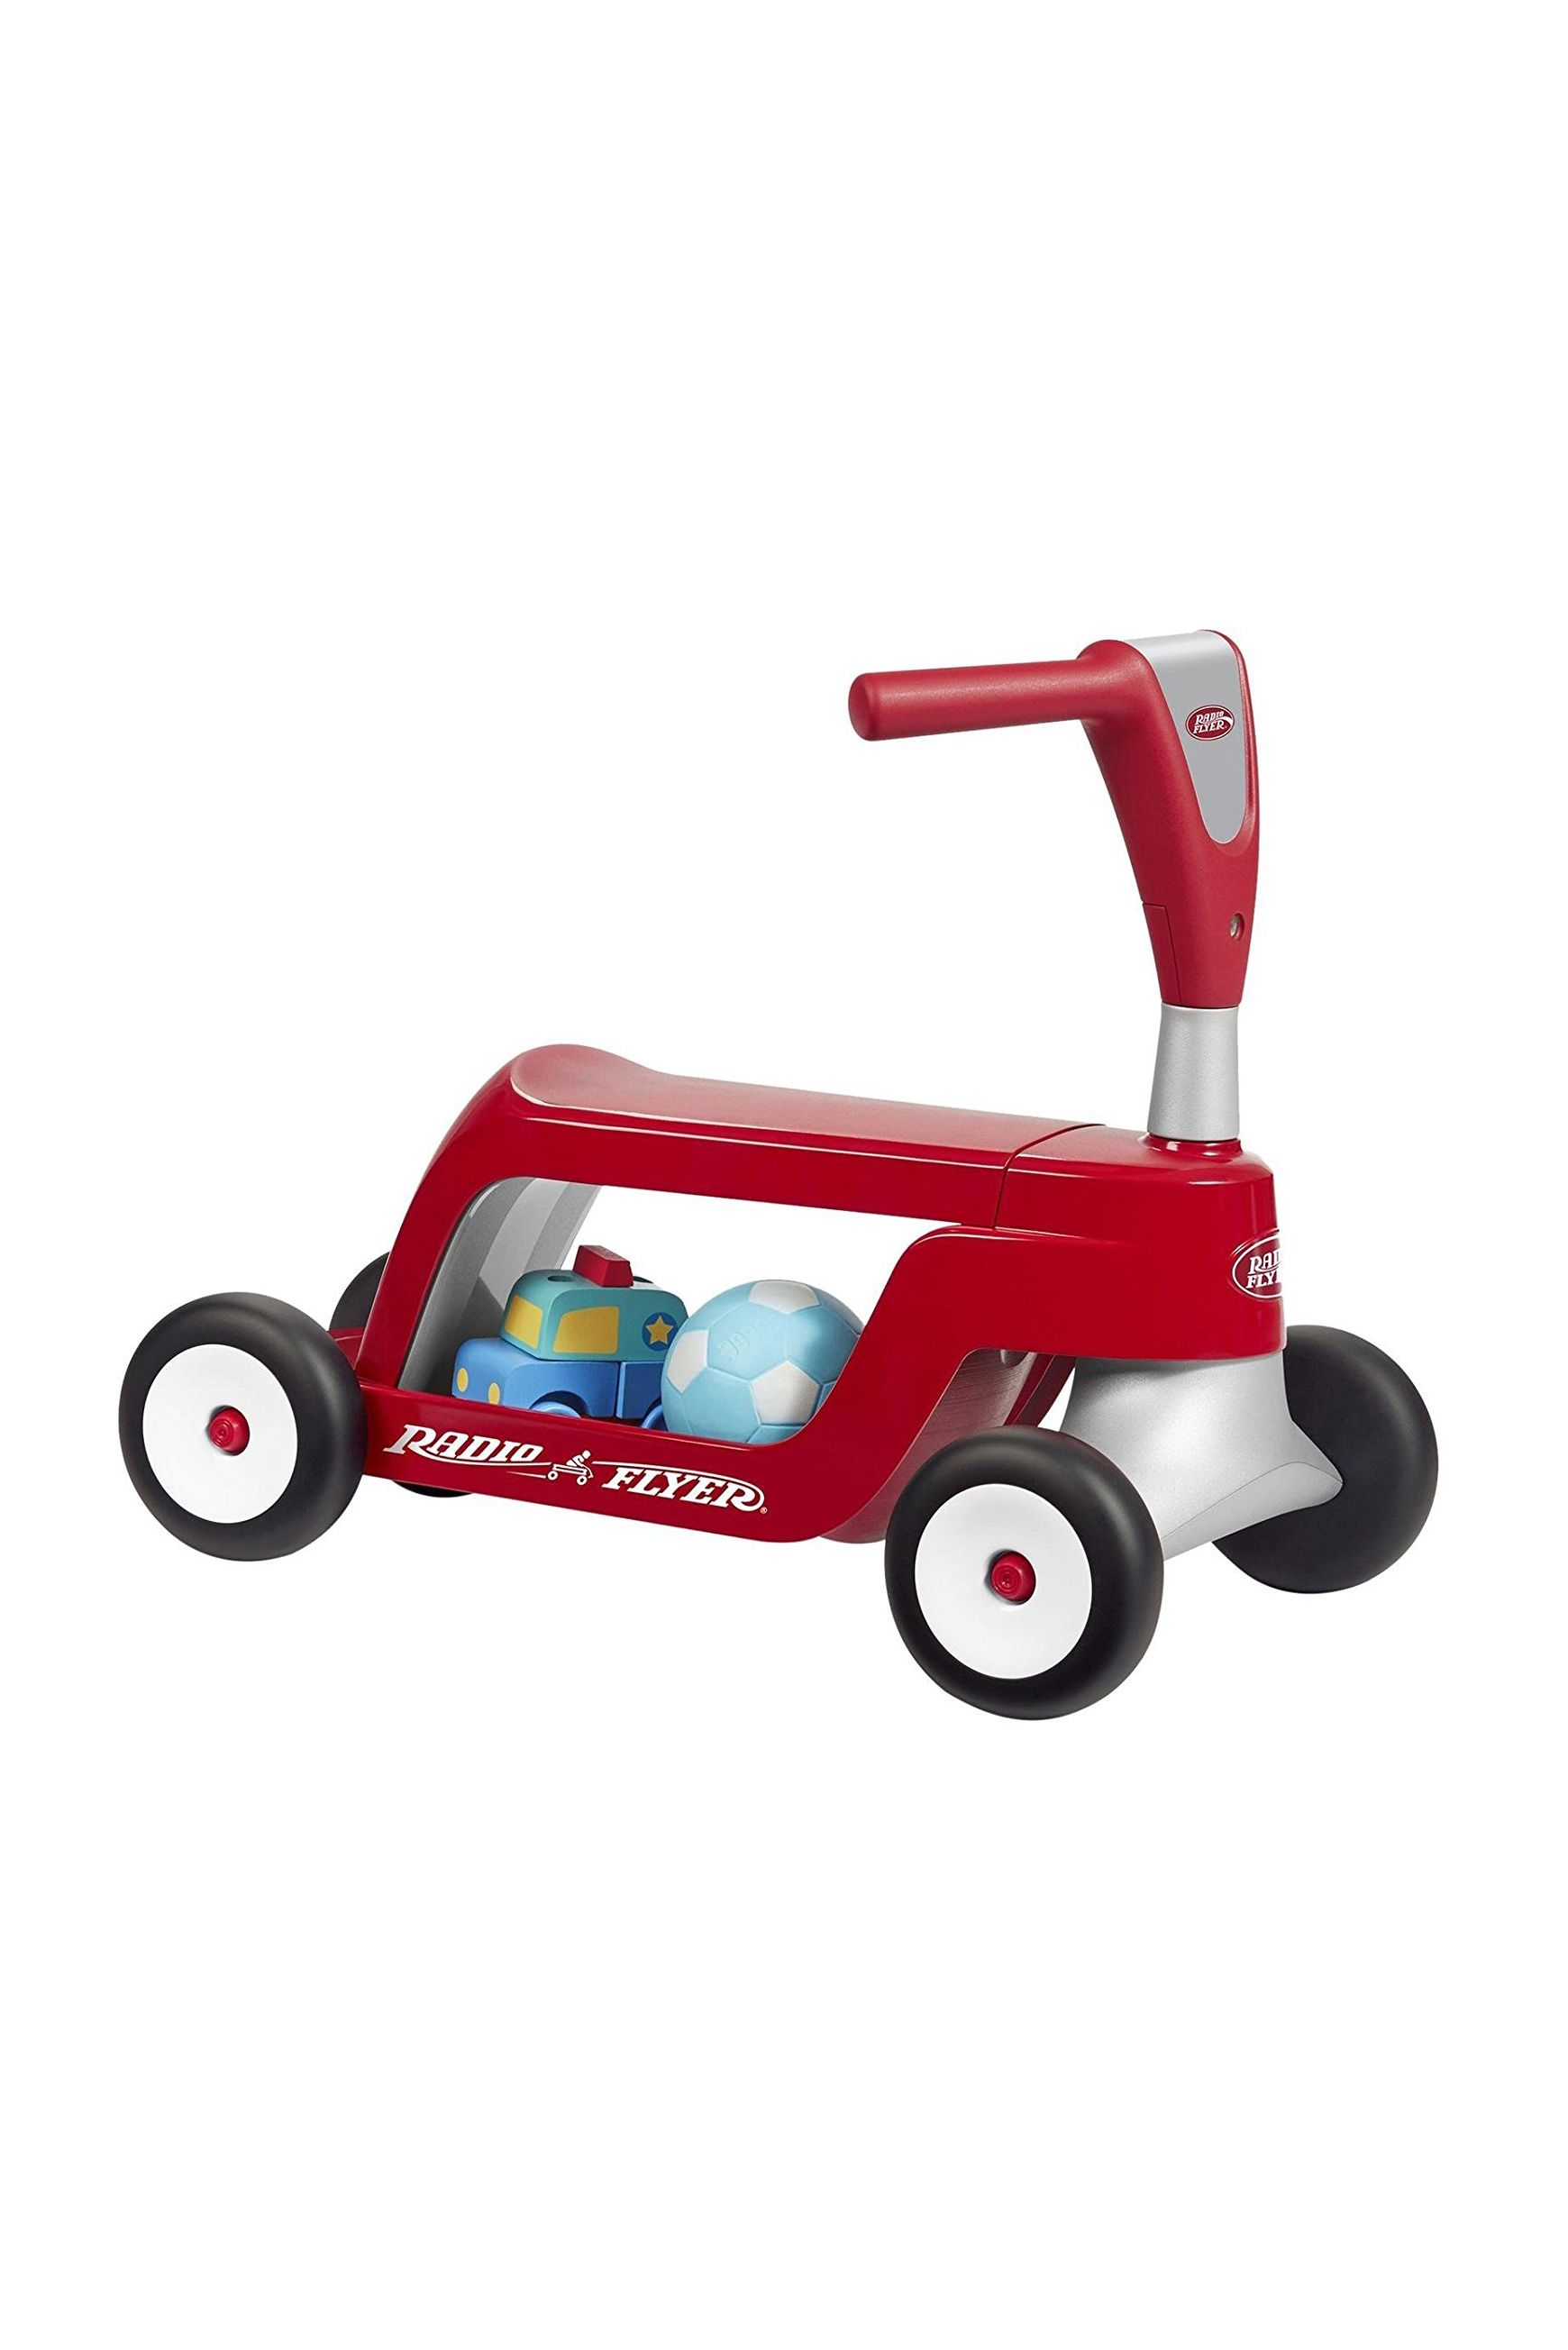 The Best Kids Ride On Cars Top Rated For Fisher Price Harley Davidson Tough Trike